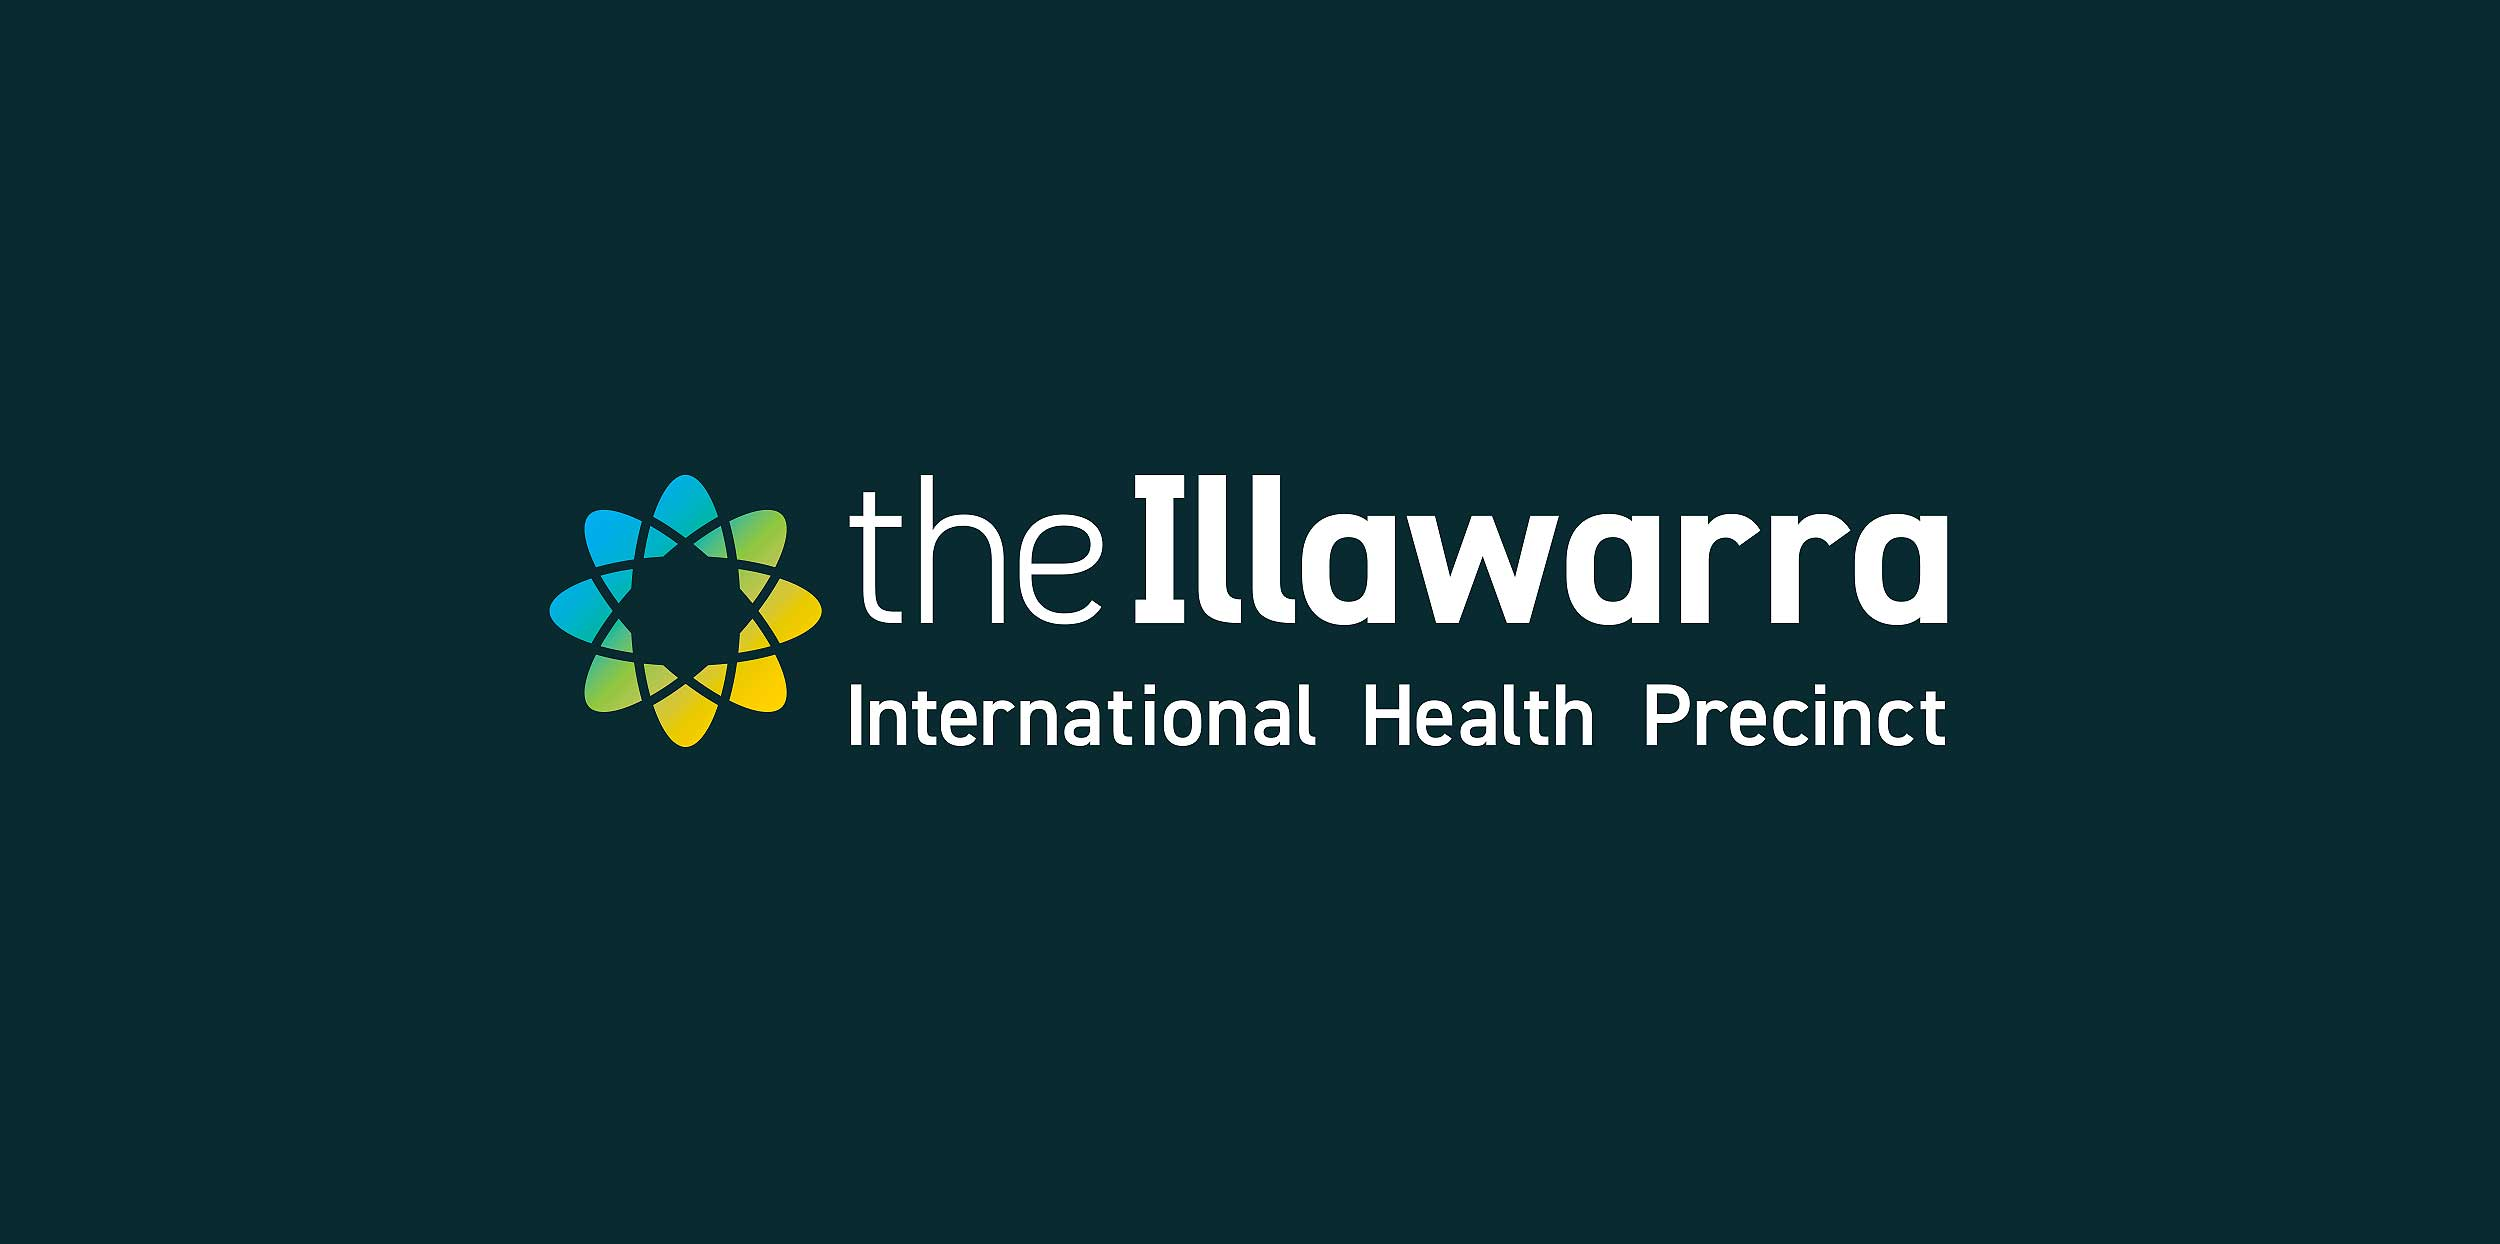 Illawarra-International-Health-Precinct-Hospital-Branding-Handle-Sydney-Branding_4.jpg